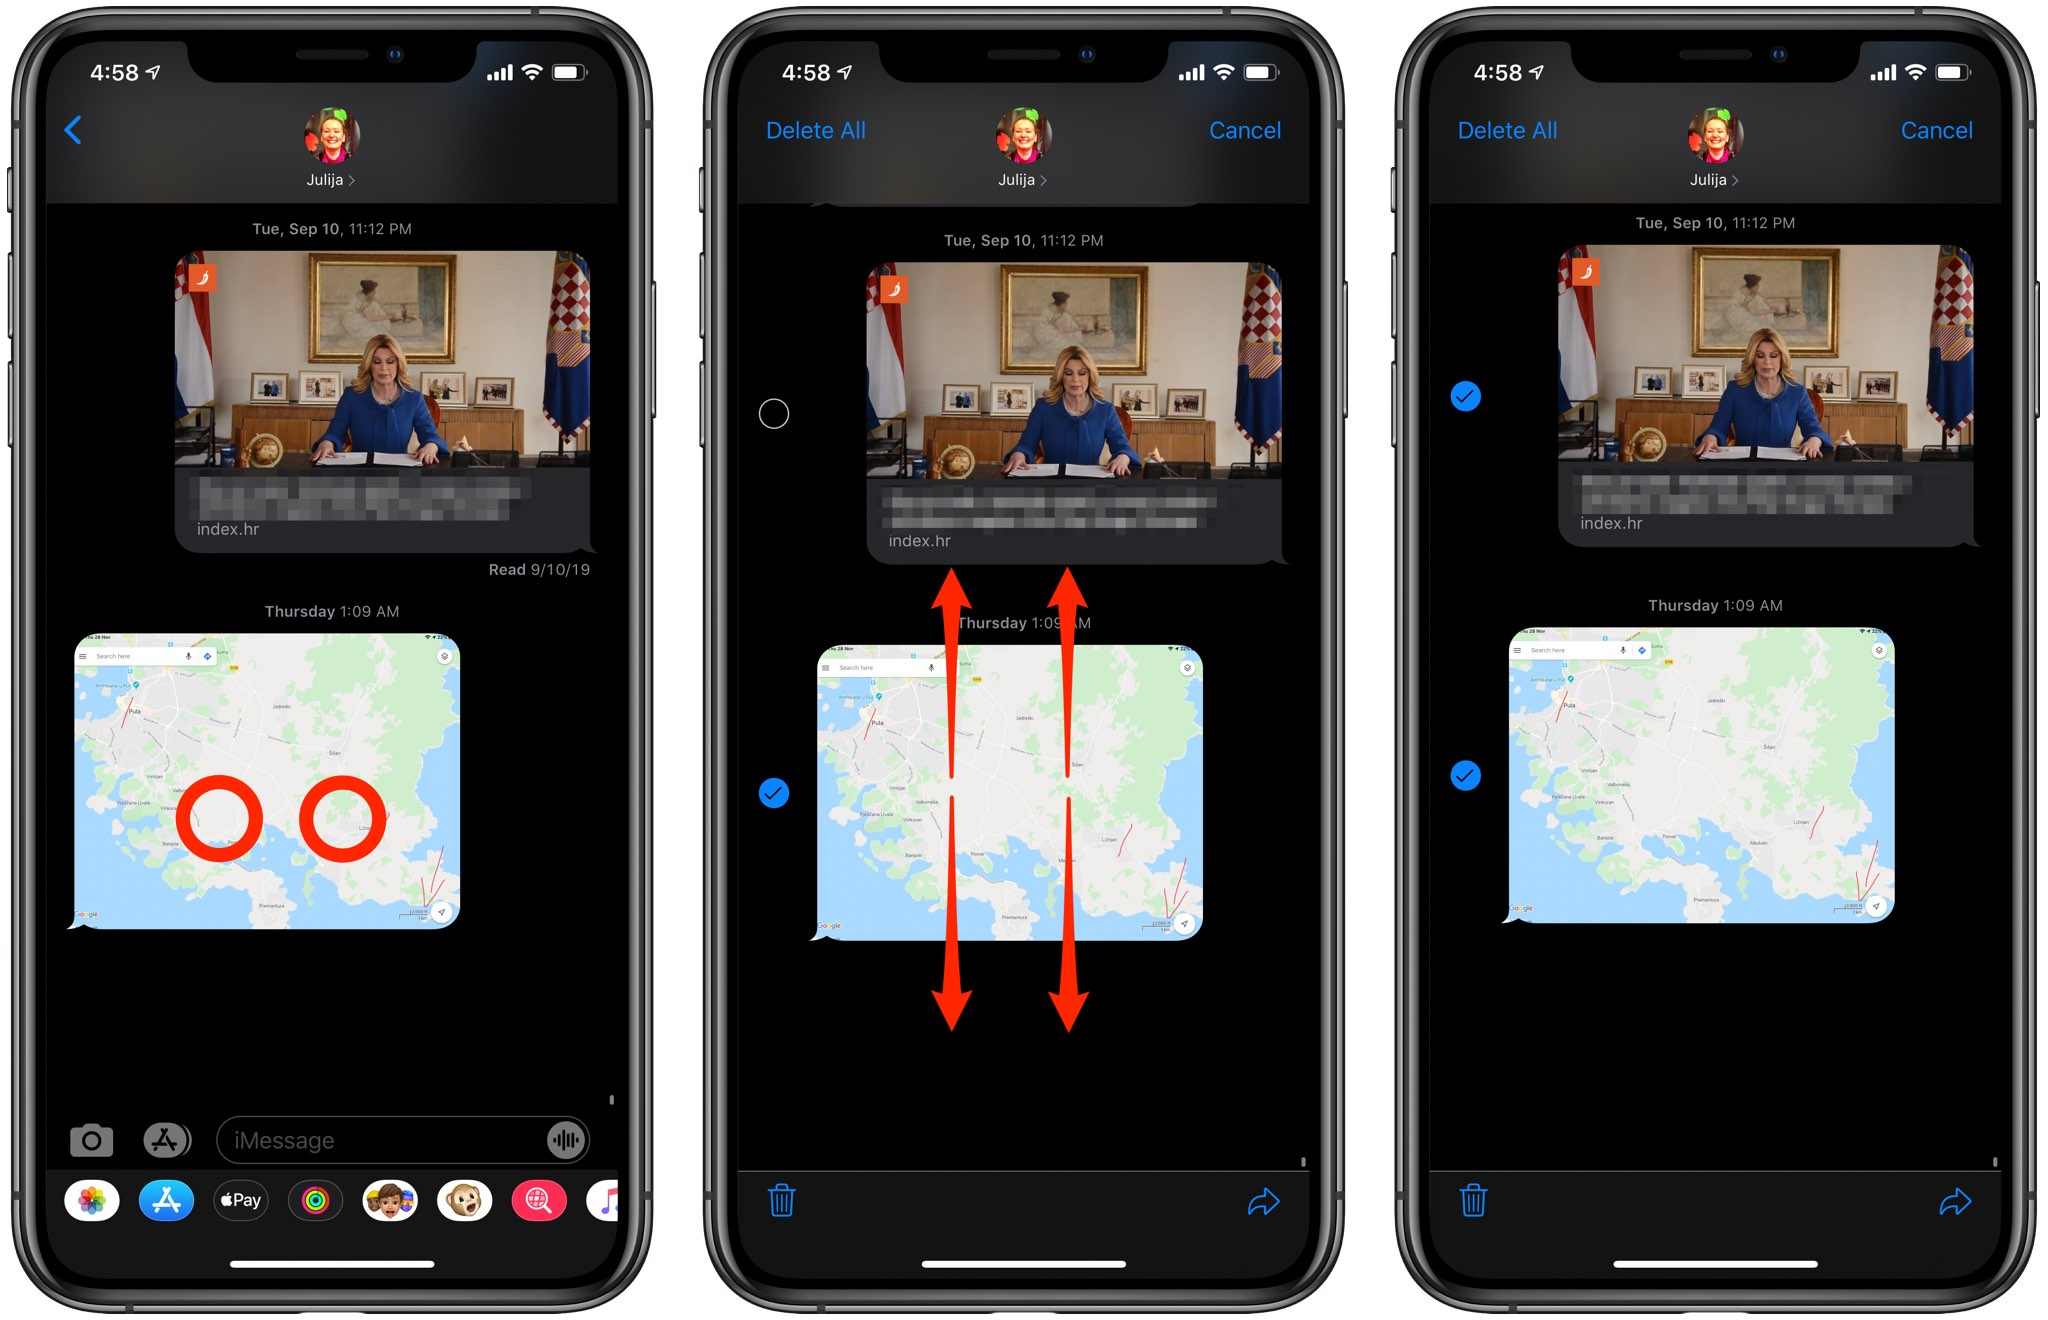 select chats with two-finger tap on iPhone